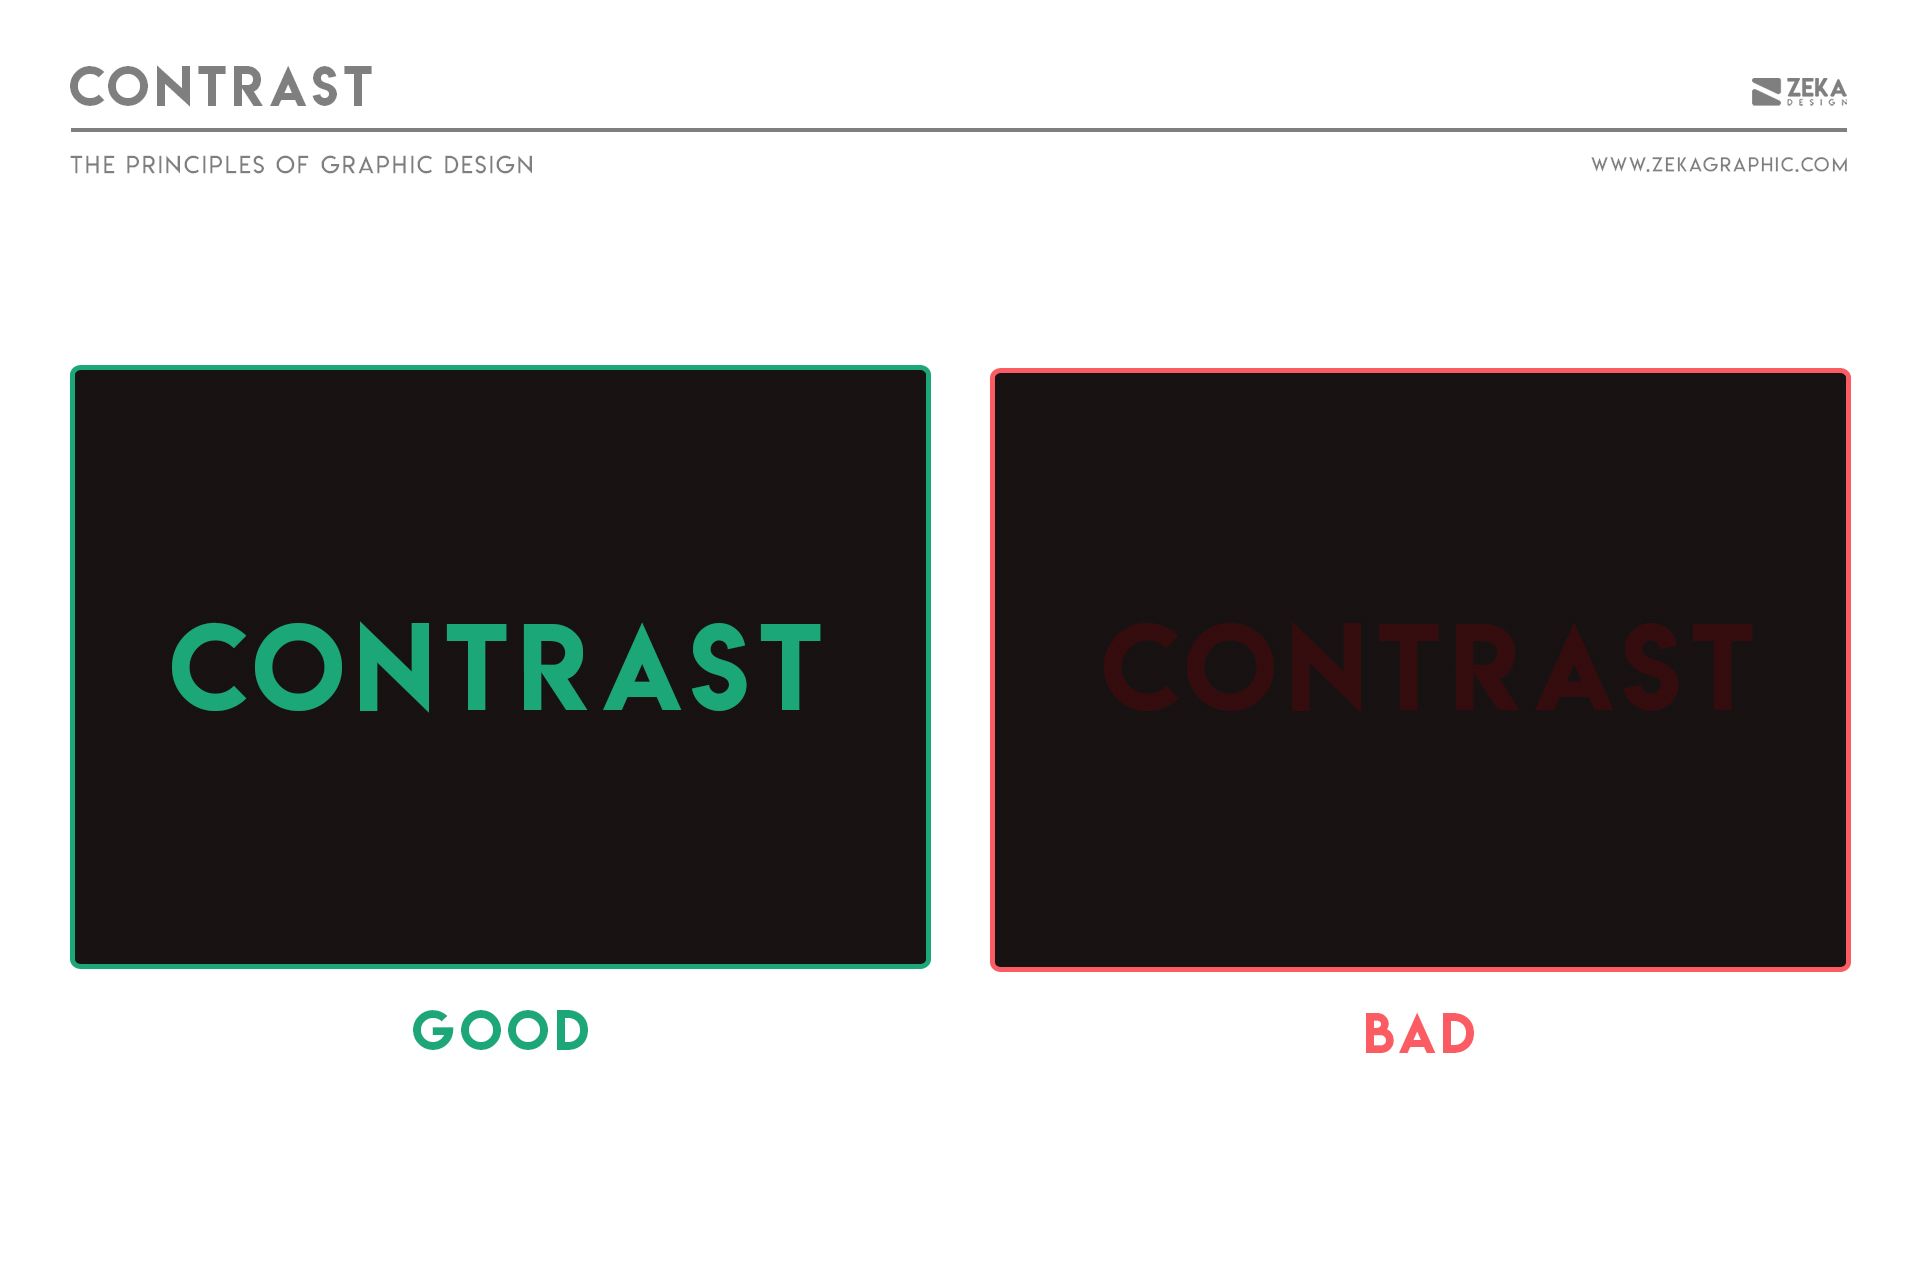 Contrast Principle in Graphic Design